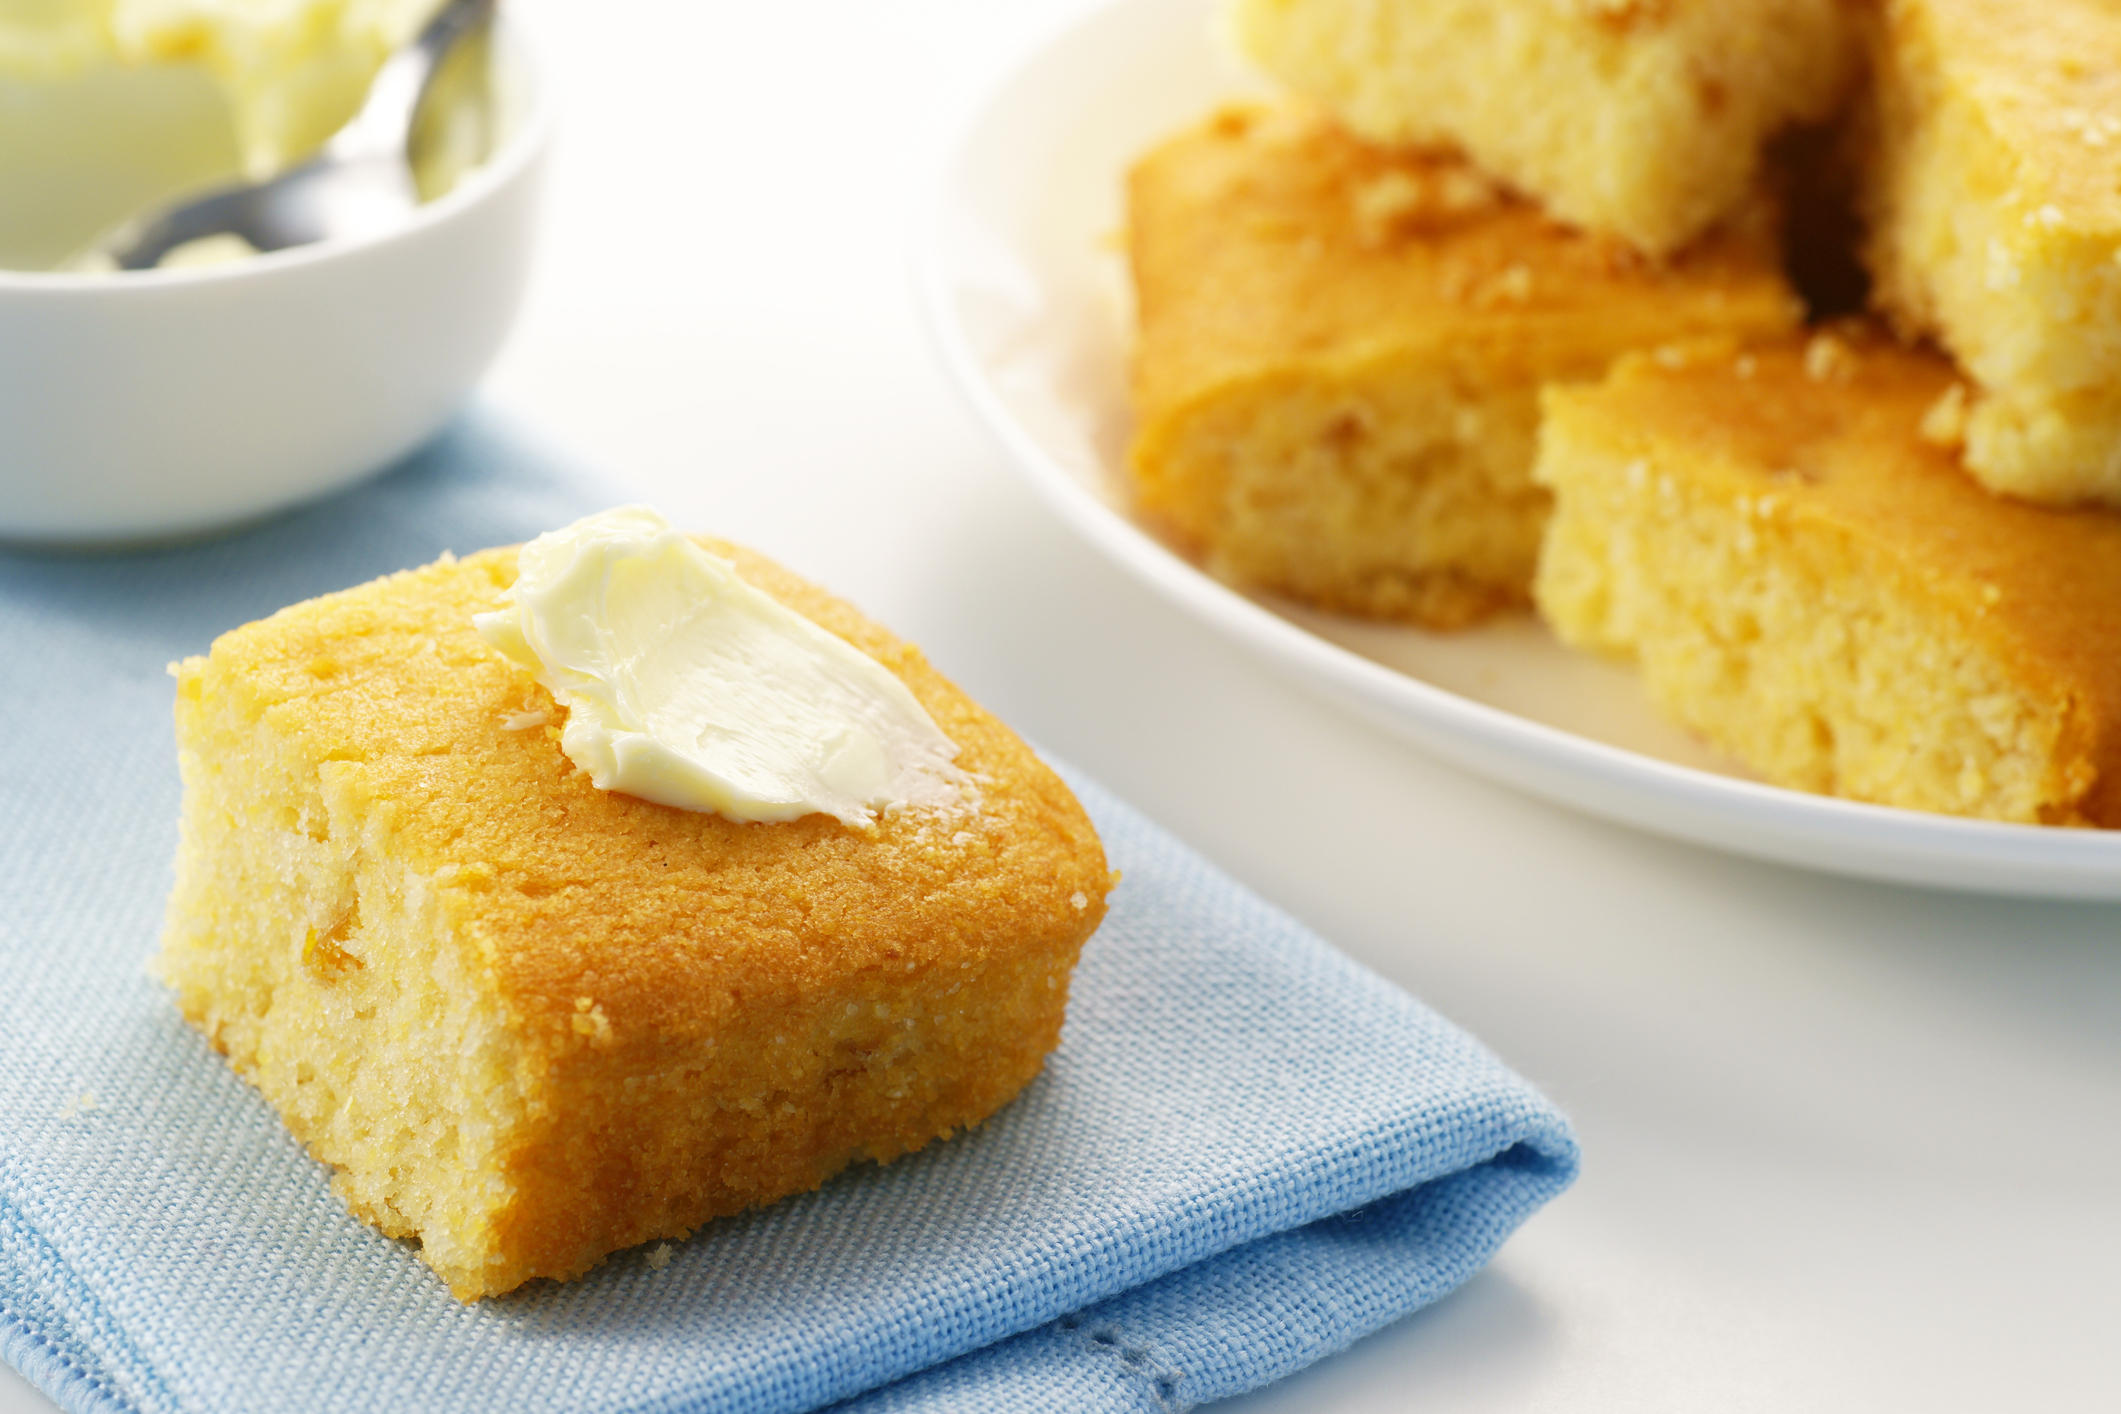 Freshly baked cornbread with sweet creamery butter.  Mmmmmm...